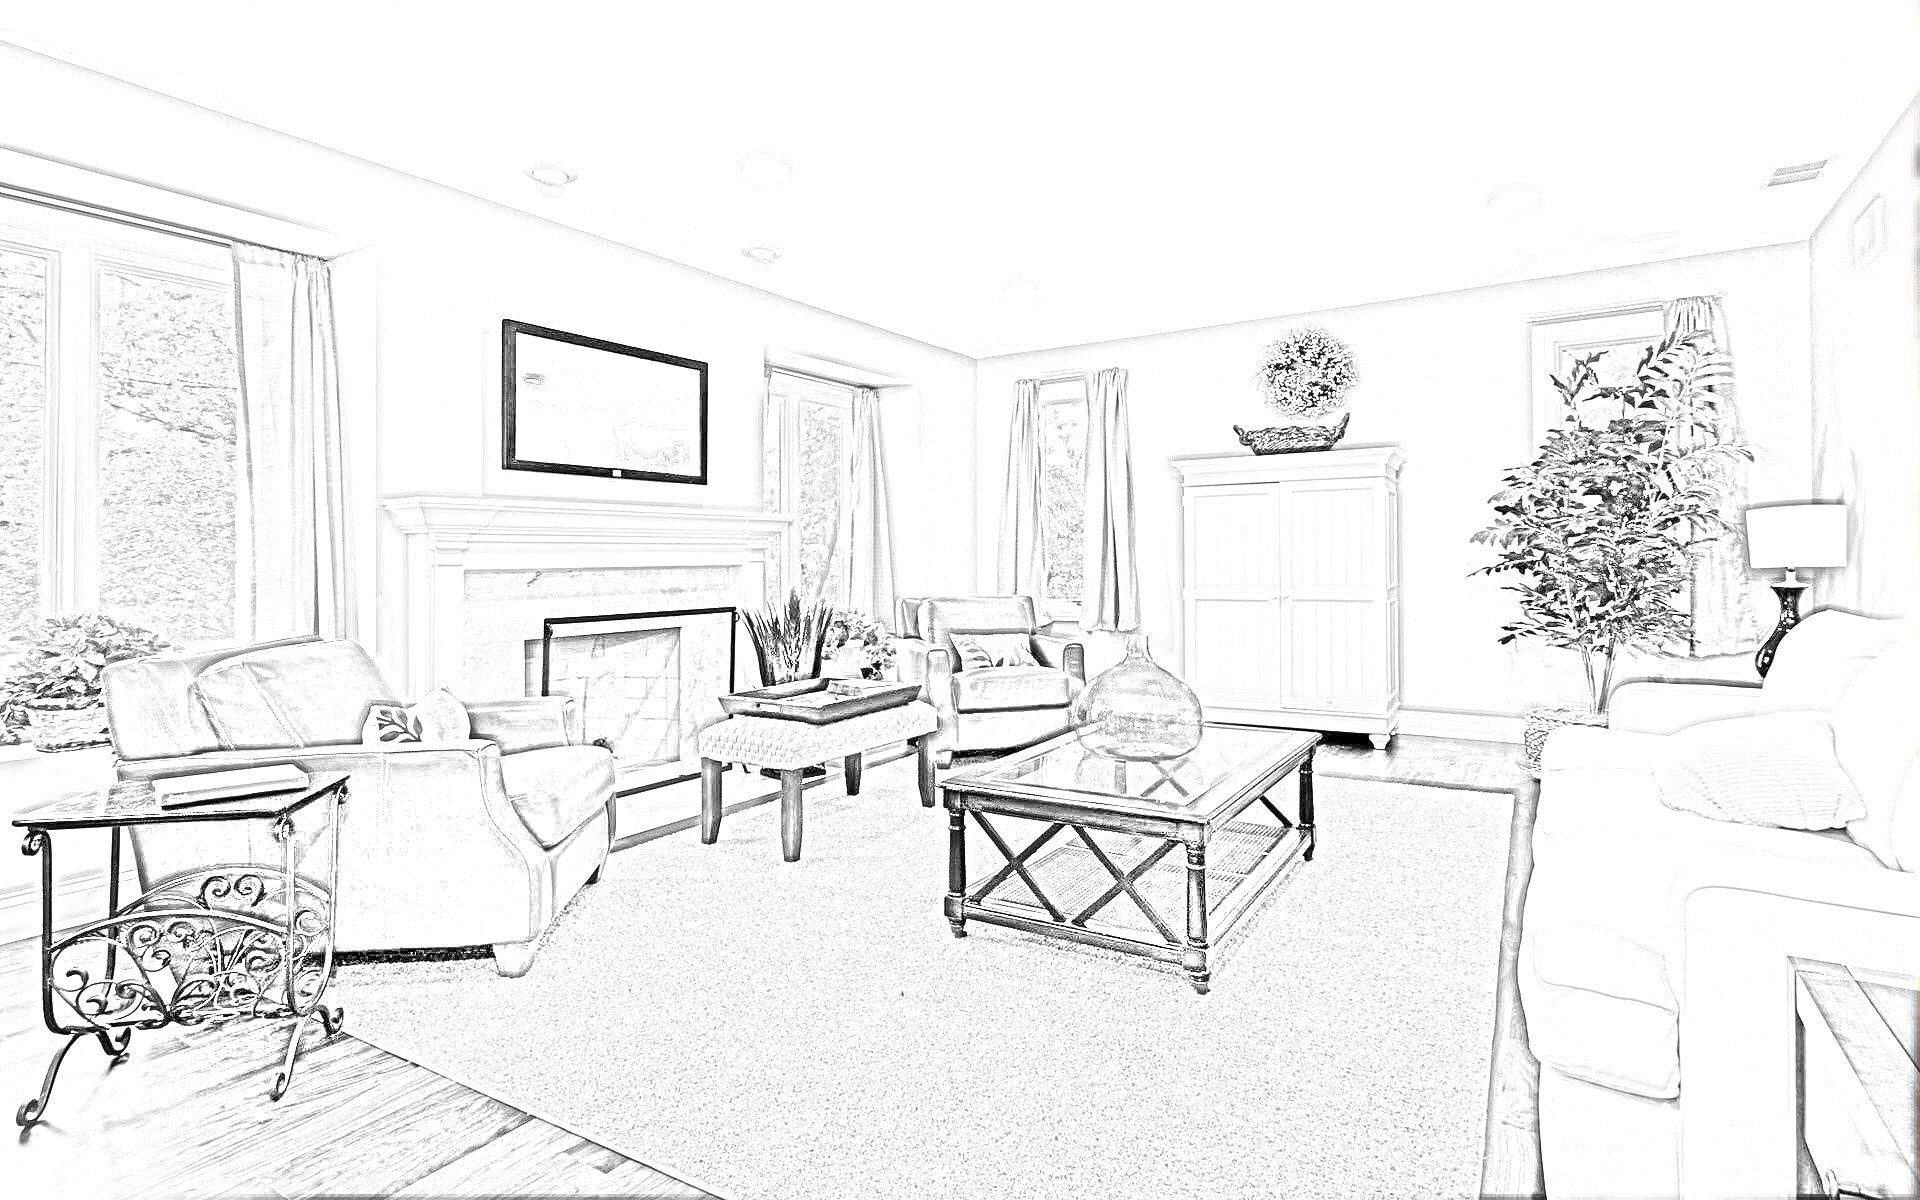 How to do interior design sketches bqtmpph stunning for Simple drawing room interior design